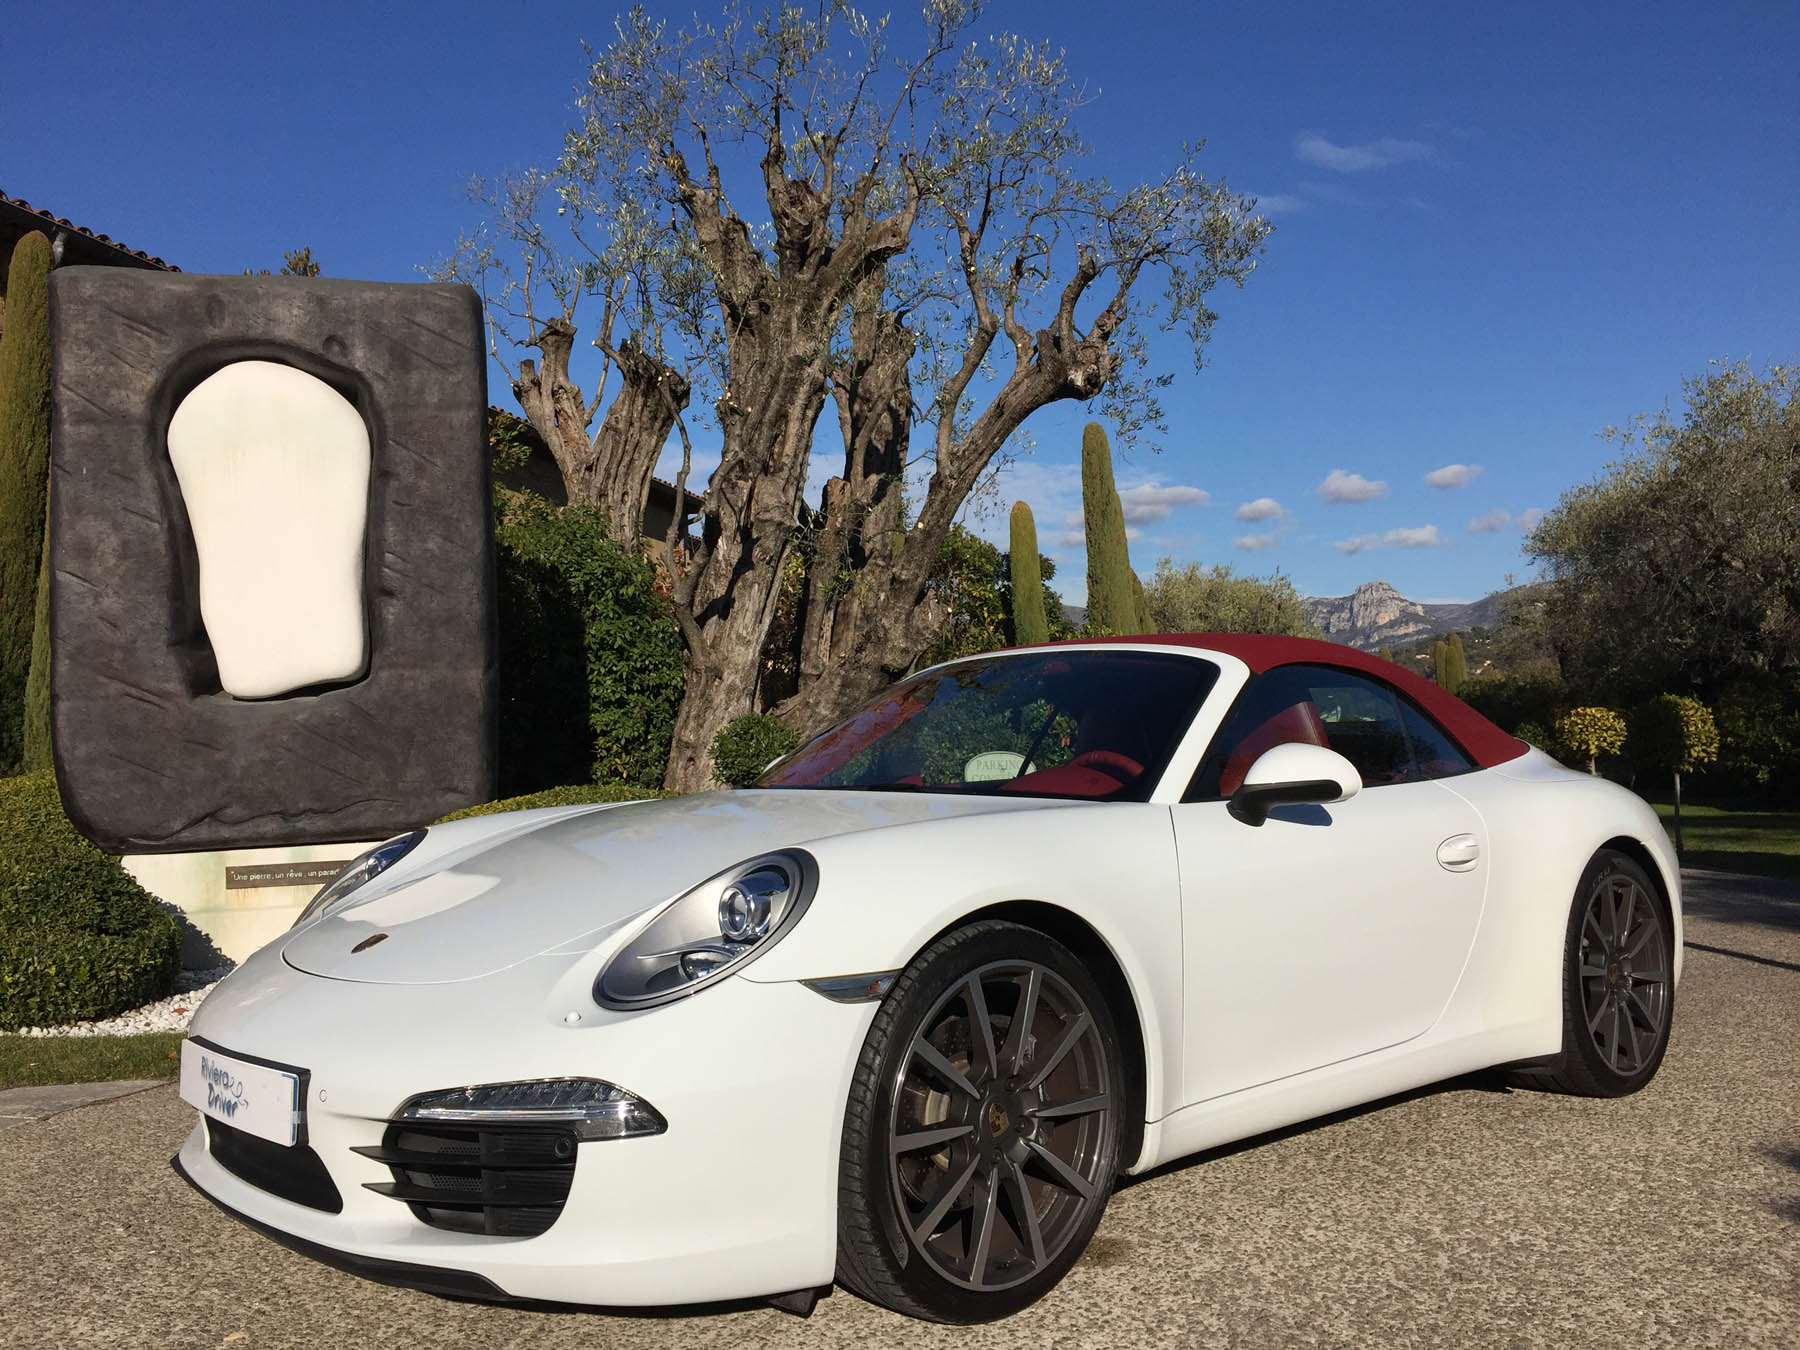 Porsche 911 Luxury Car For Wedding With Private Driver Our Fleet